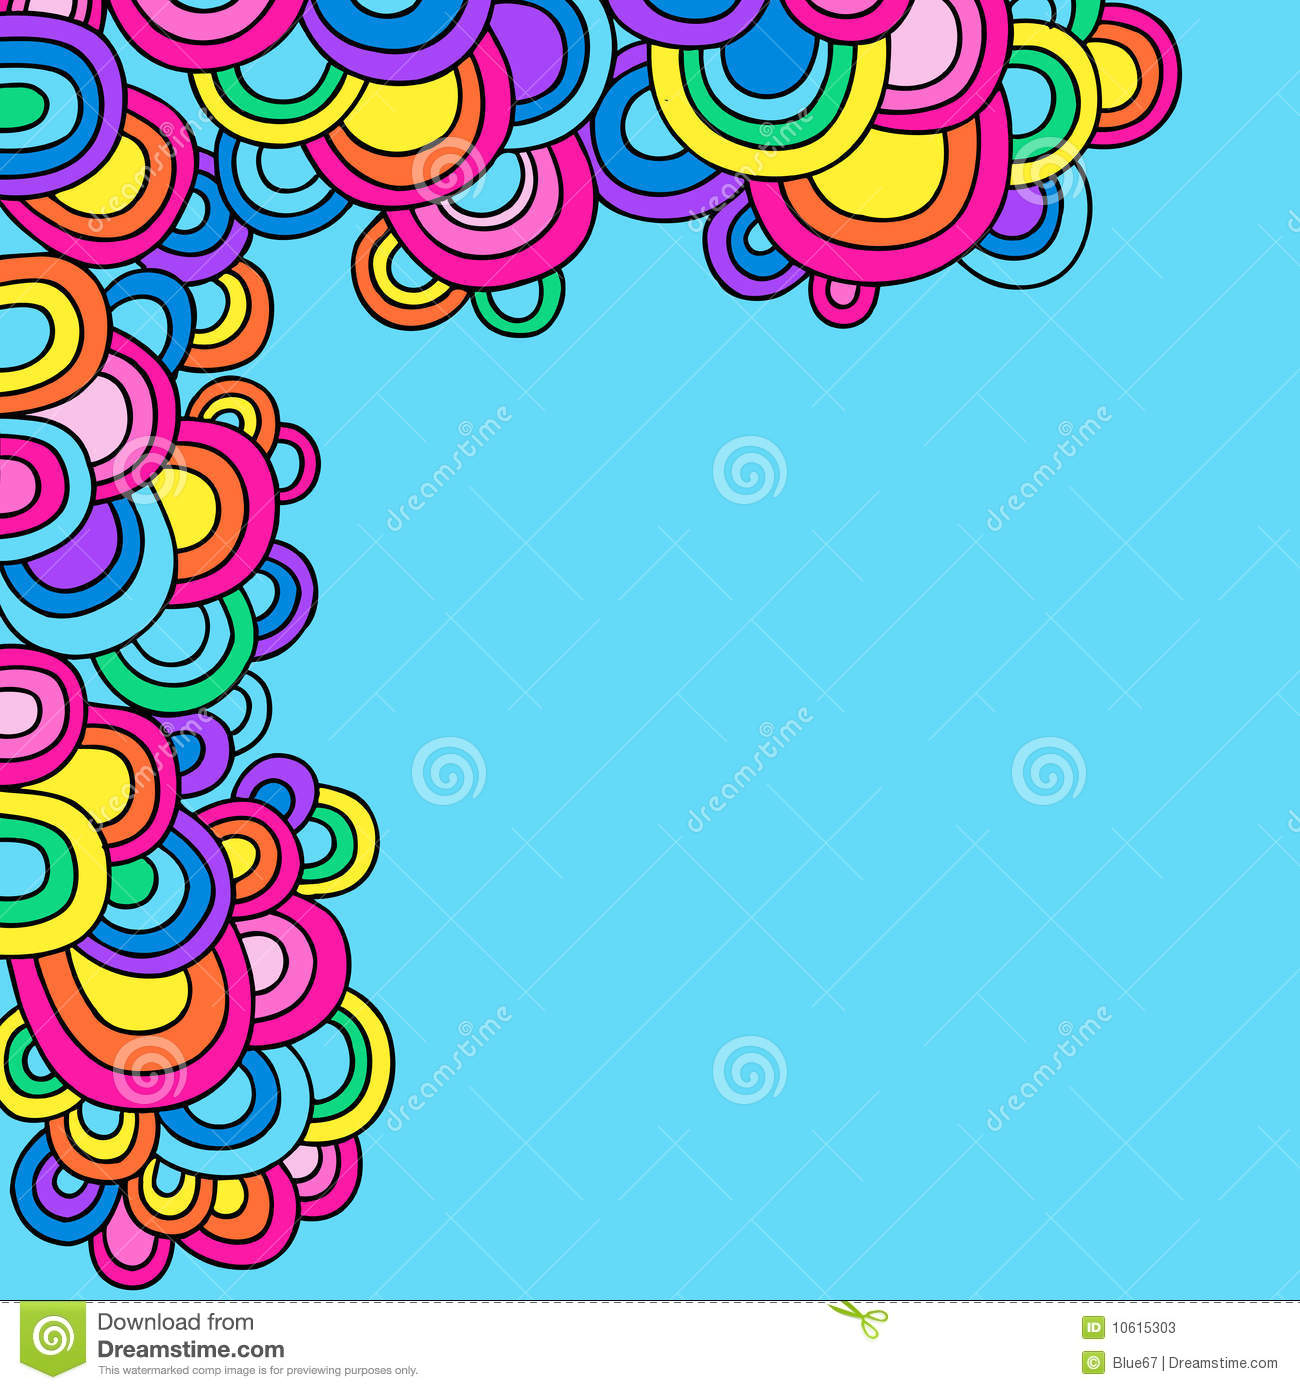 Groovy Psychedelic Doodle Circles Vector Stock Photos - Image ...